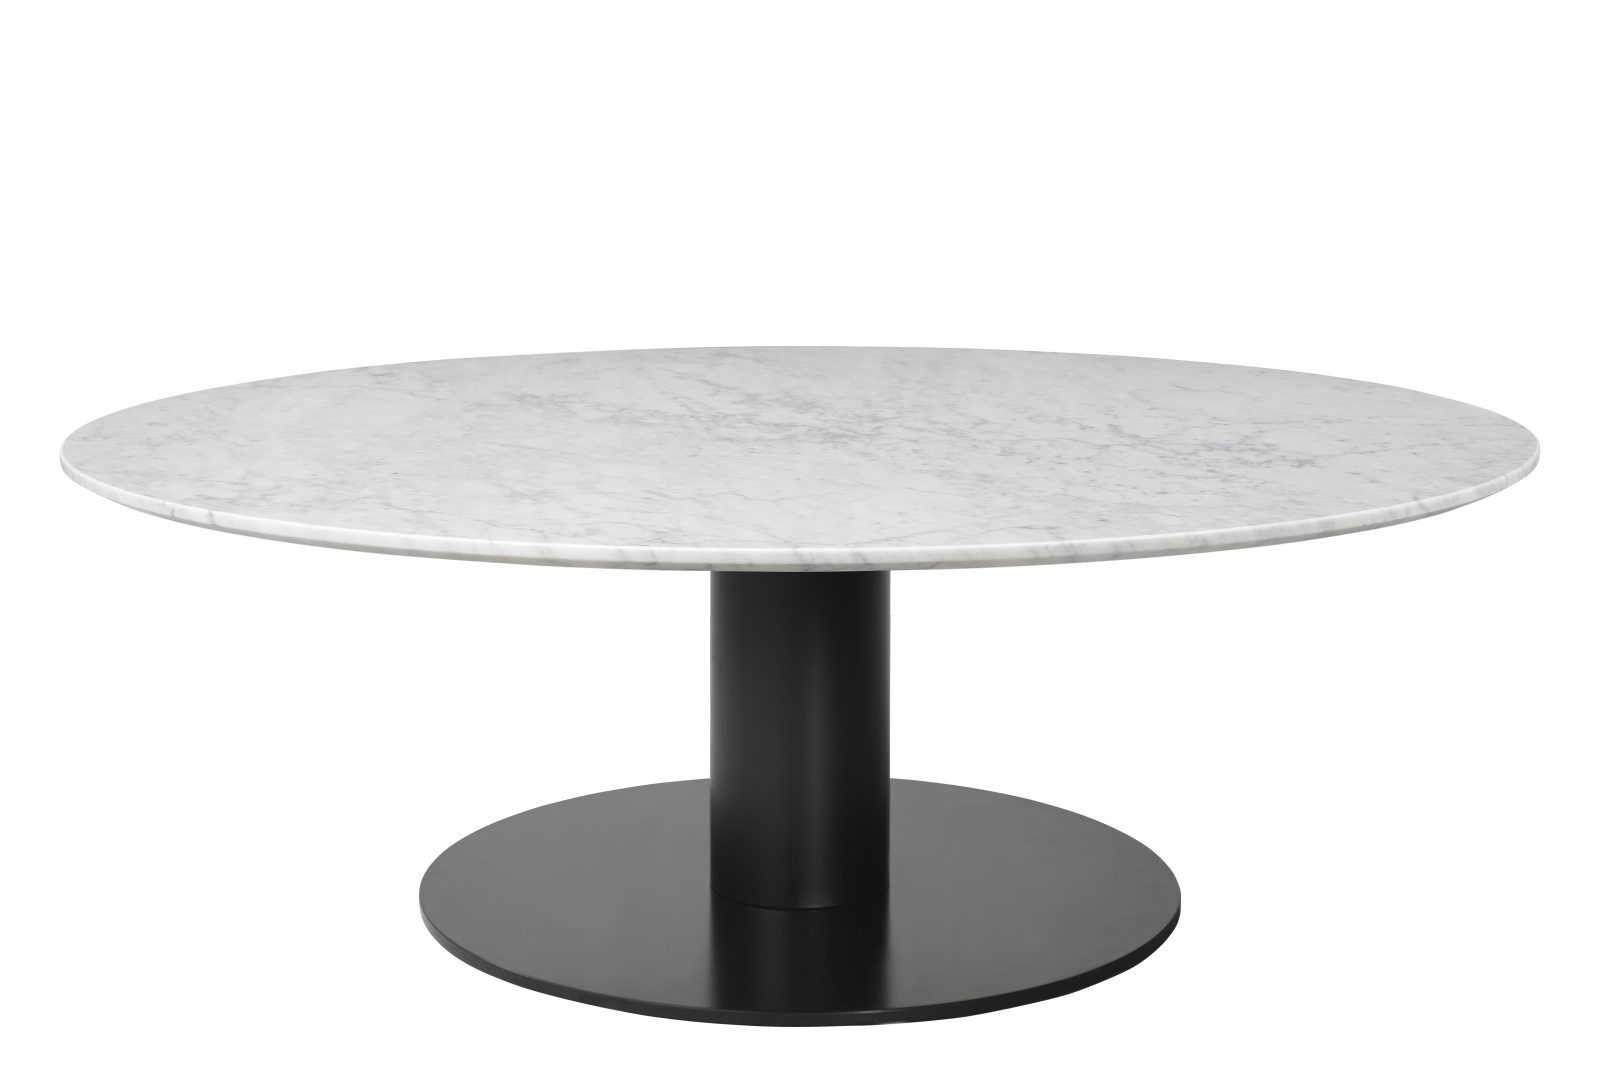 Gubi 2.0 Round Coffee Table Marble Bianco Carrara, Gubi Metal Black, Ø130